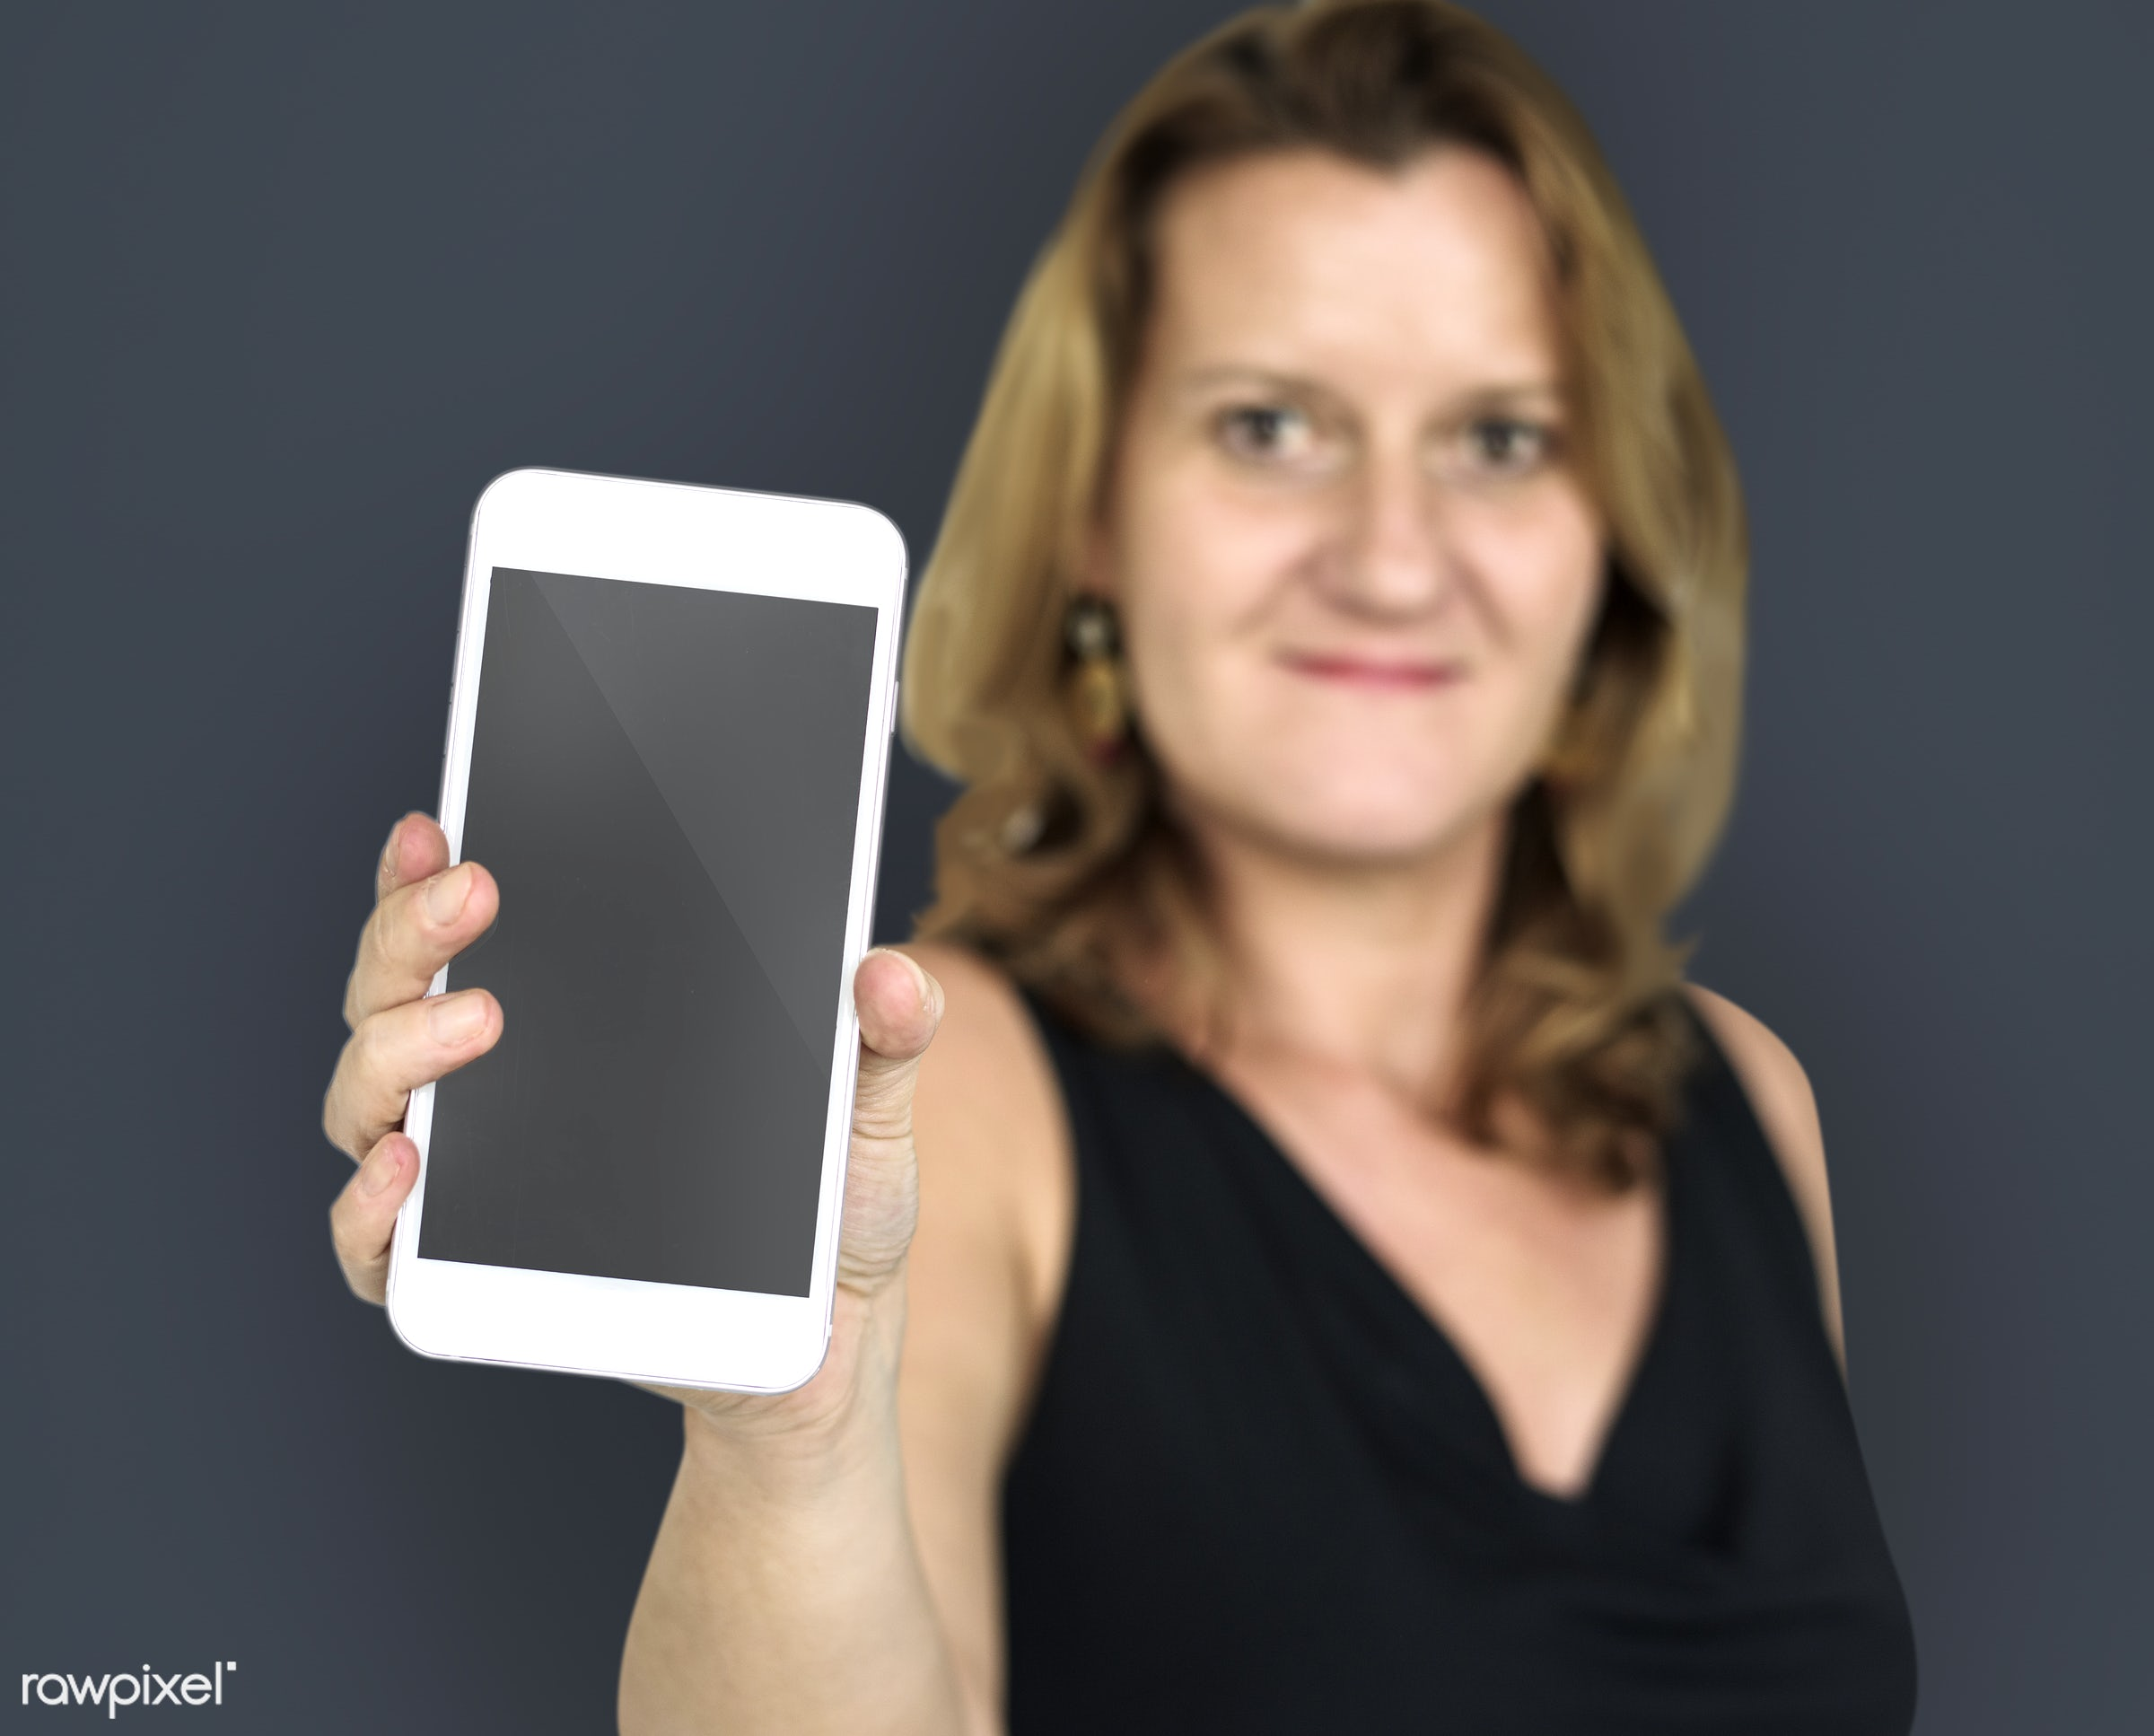 expression, studio, person, phone, portable, technology, holding, object, people, network, positivity, caucasian, girl,...